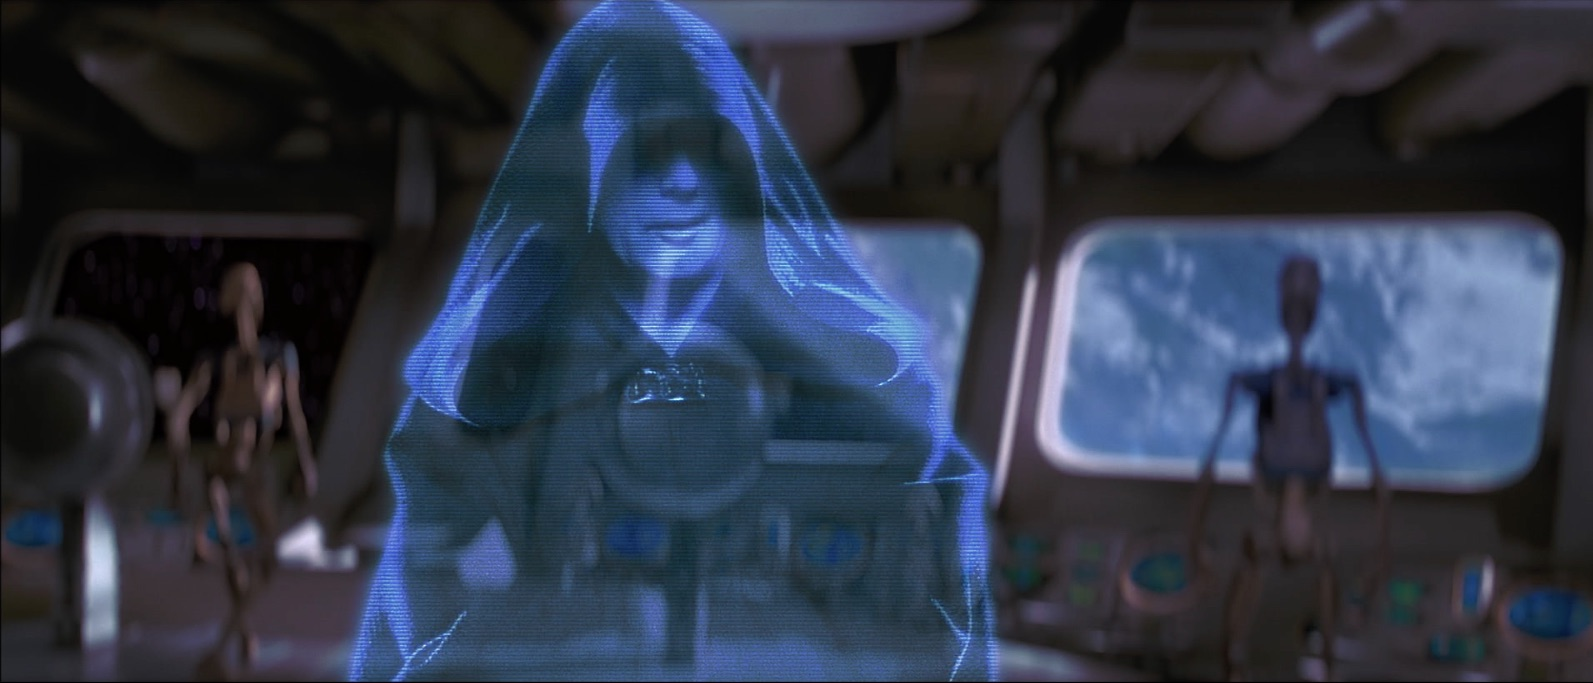 Hologram of Darth Sidious